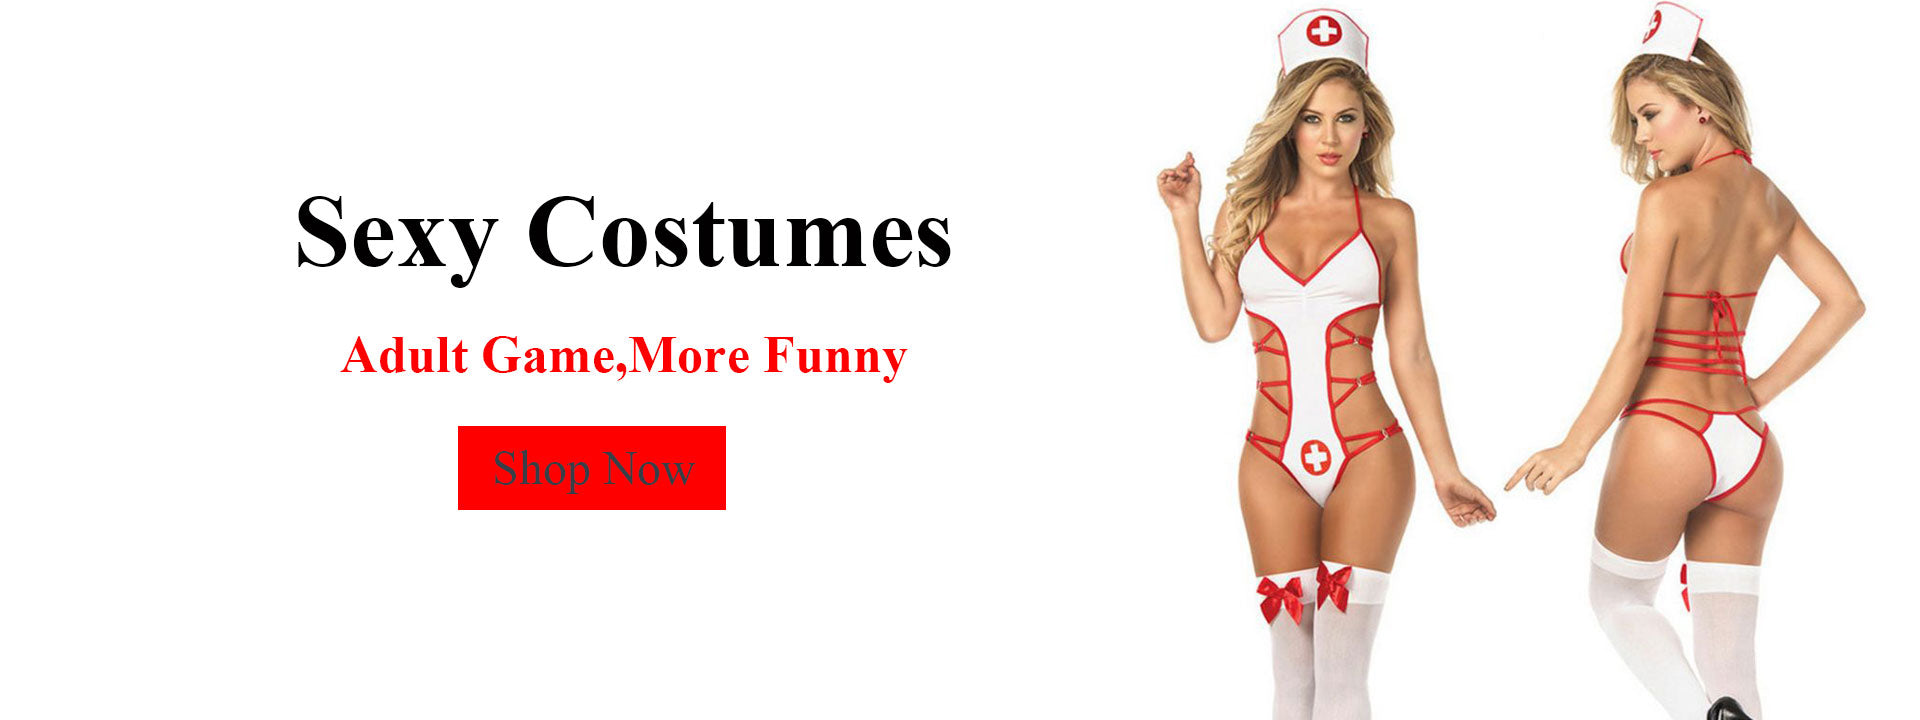 sex-costumes-banner